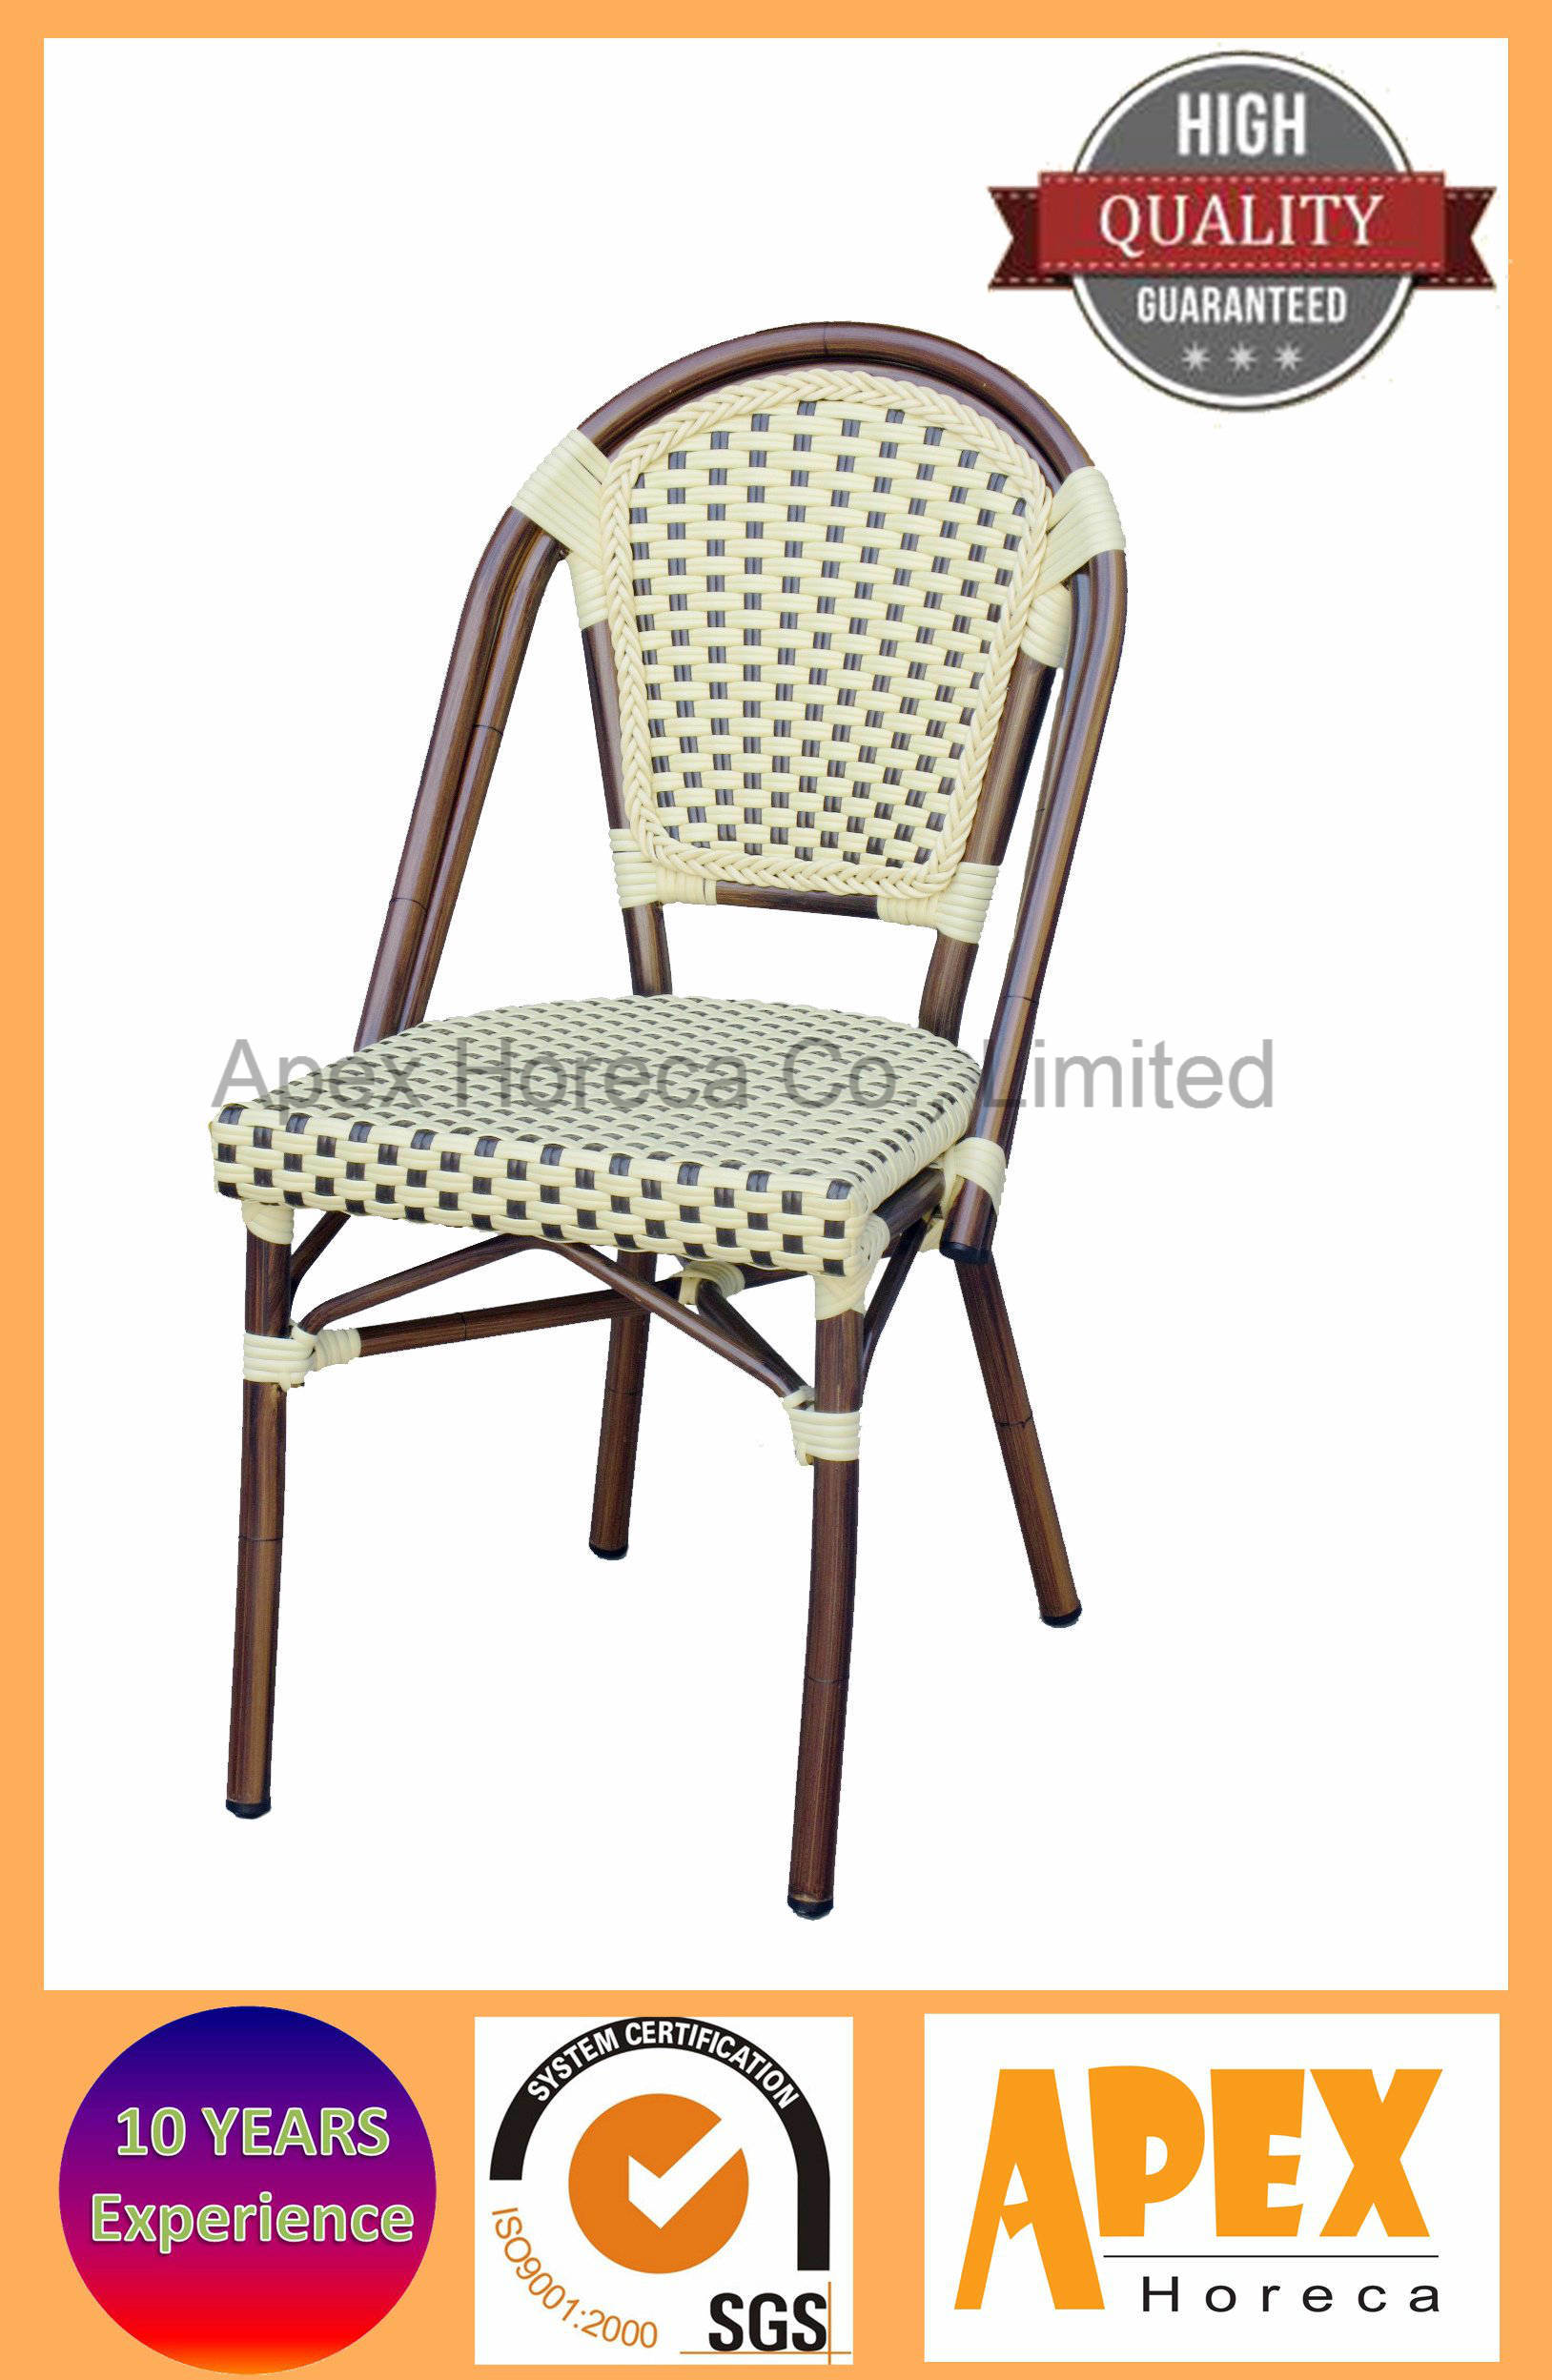 Bistro French Chair Wicker Chair Bamboo Look Cafe Furniture